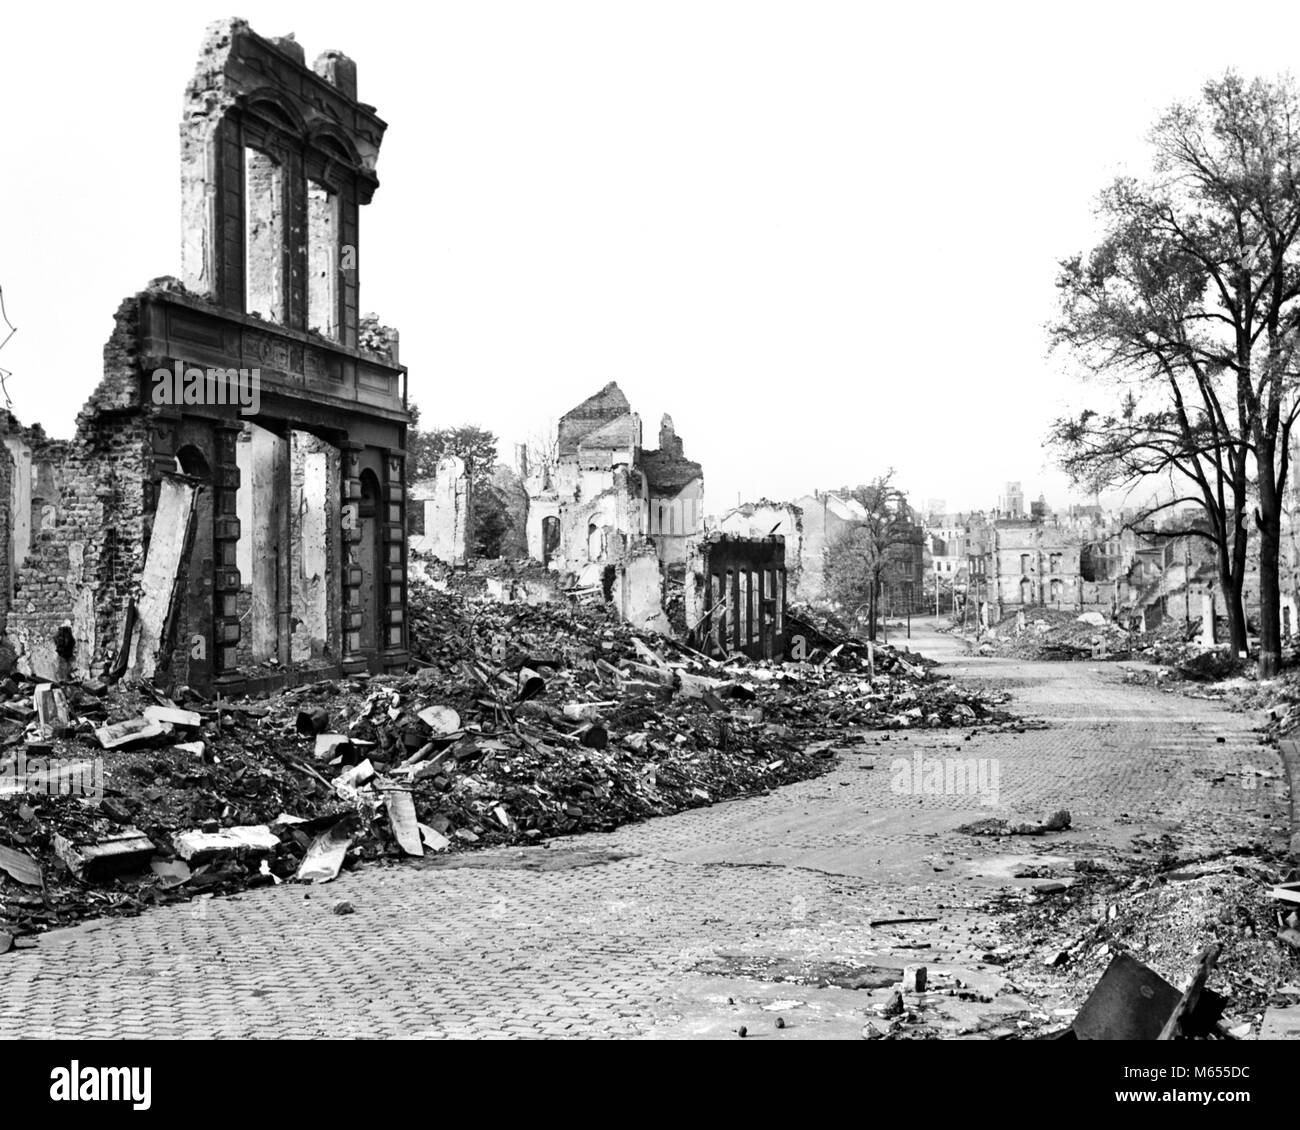 1940s RUINS OF AACHEN GERMANY DESTROYED BY ALLIED BOMBS AND WAFFEN SS AS A RESULT OF FANATIC NAZI DEFENSE - a3767 - Stock Image